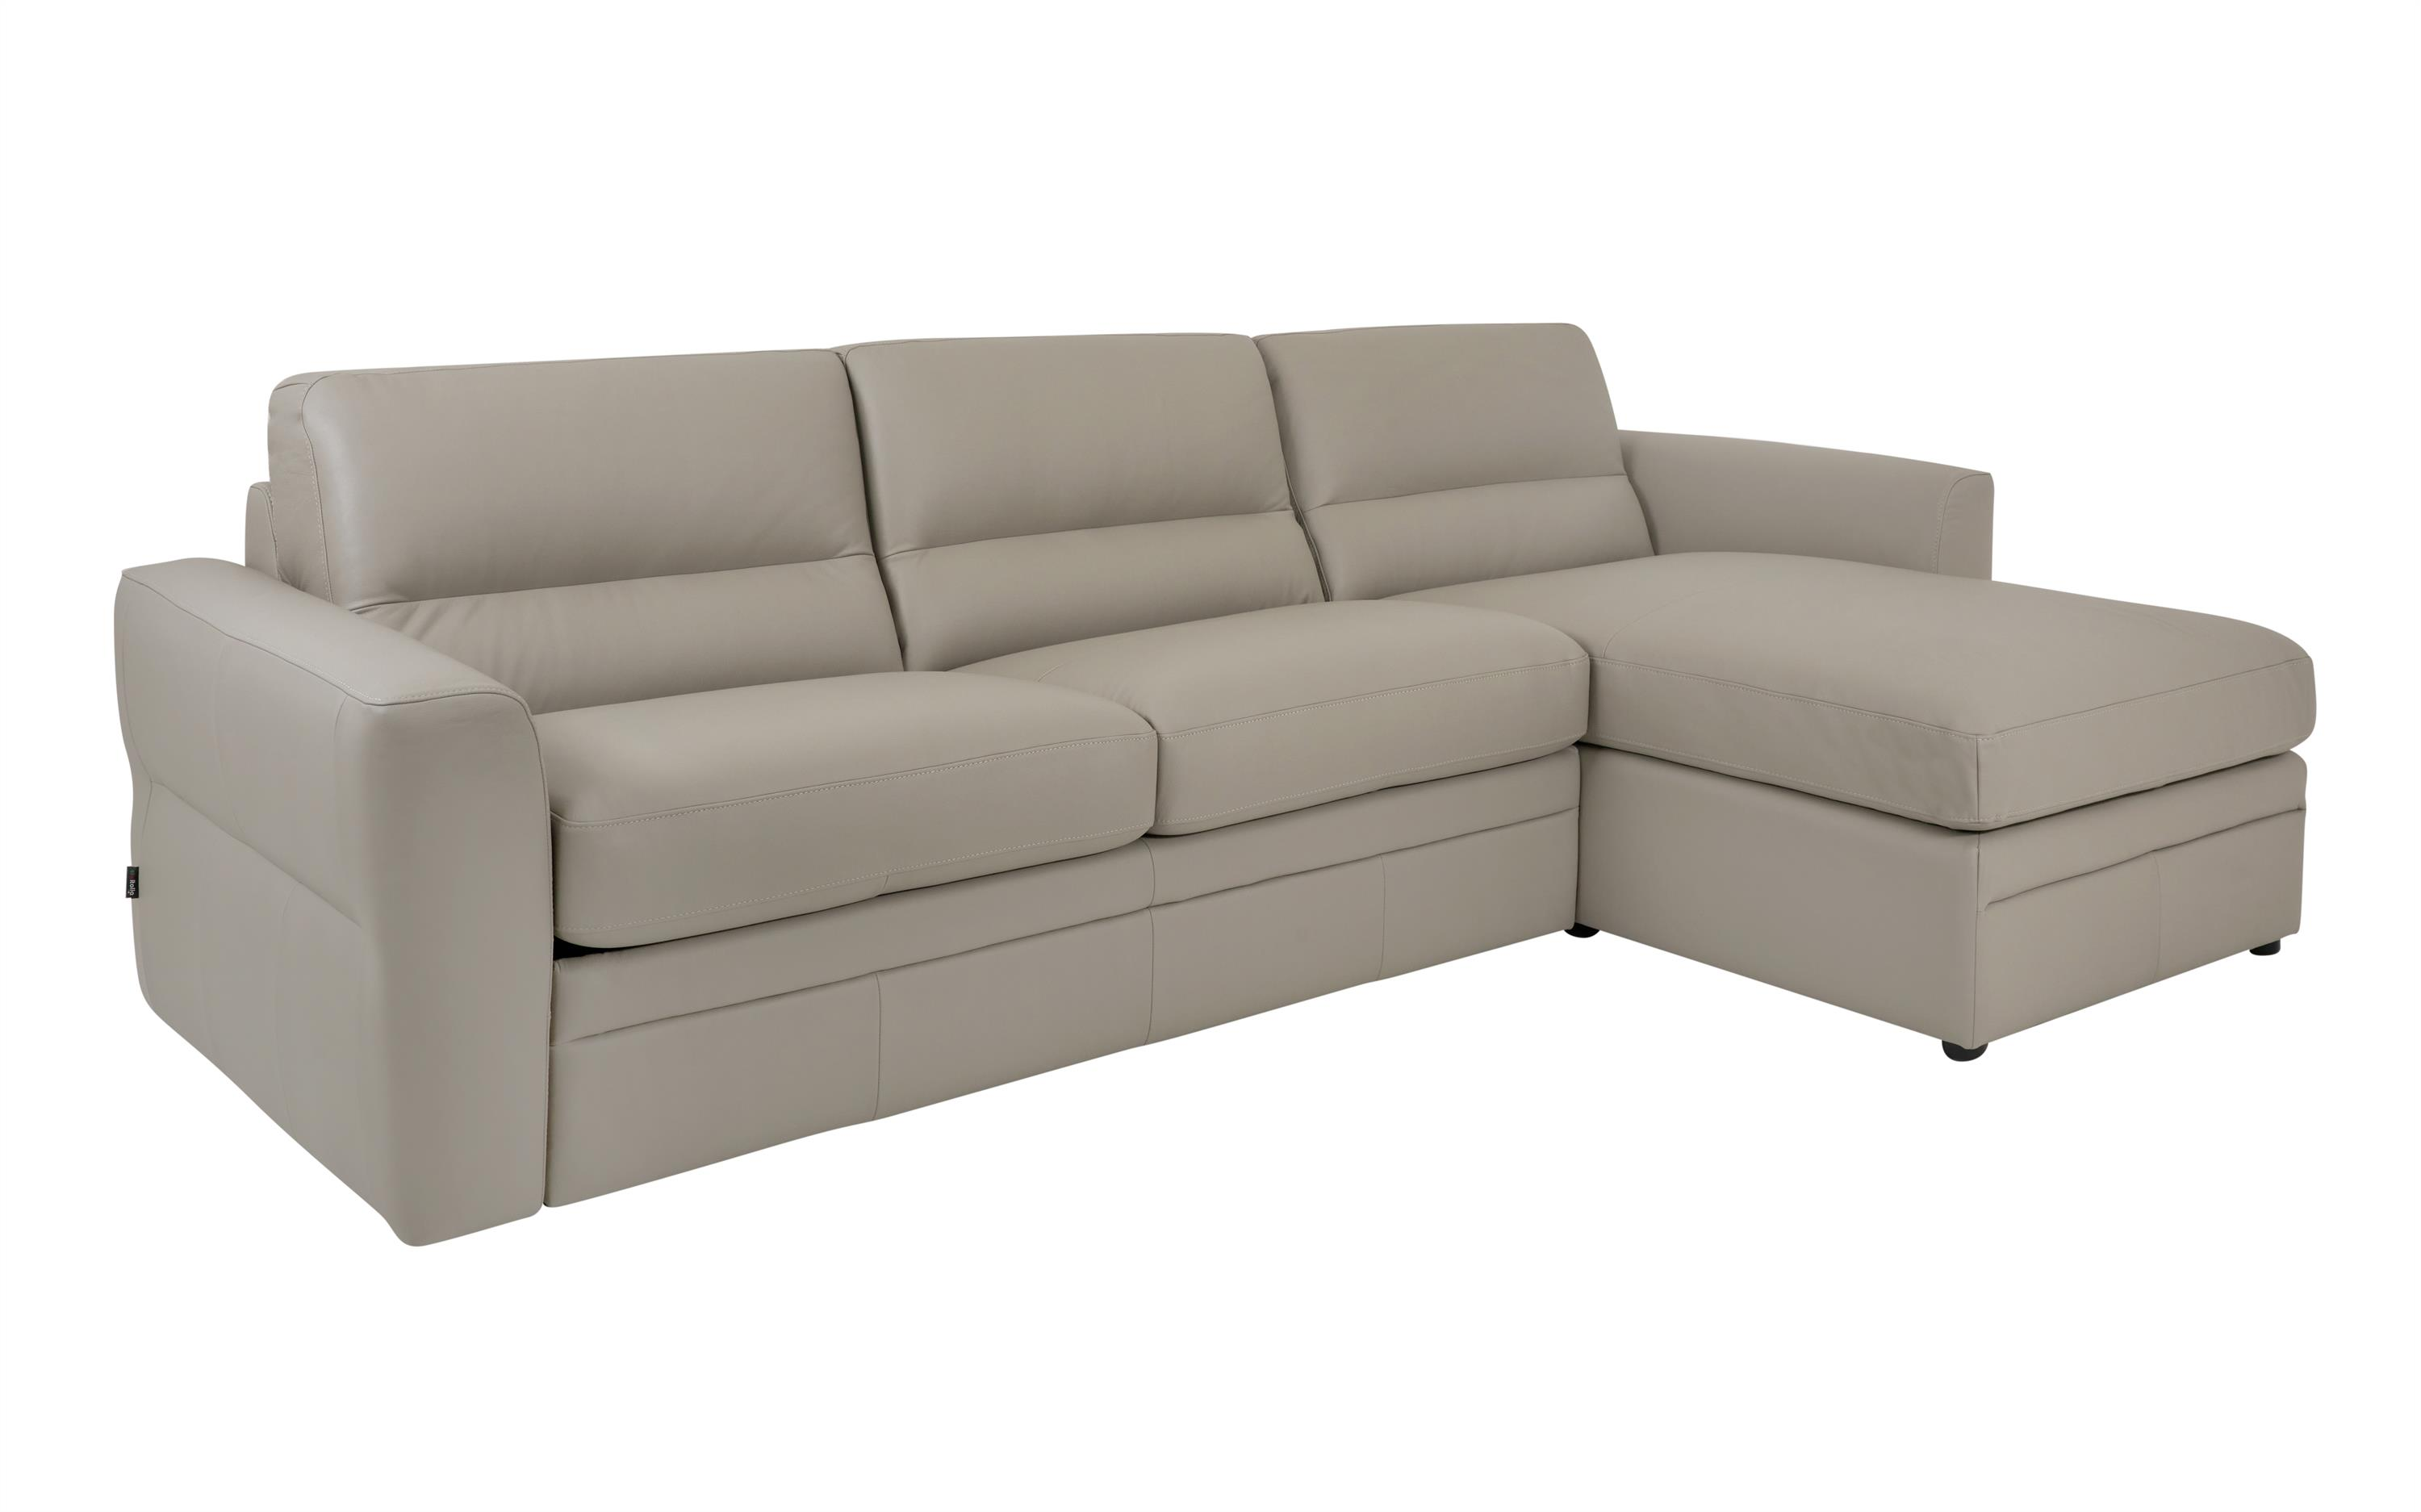 Sisi Italia Amalfi 3 Seater Sofa Bed With RHF Storage Chaise, , large